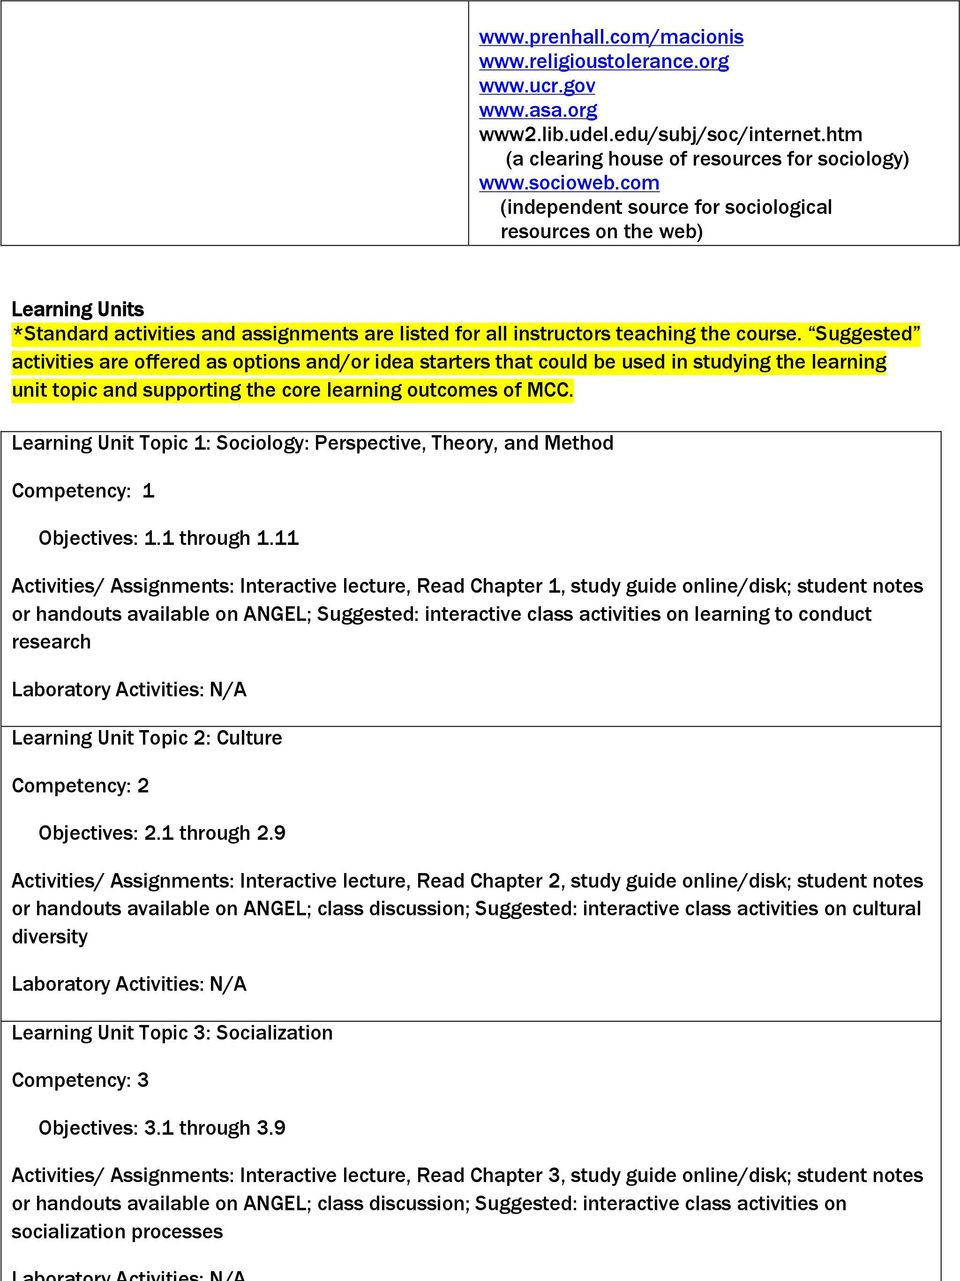 Suggested activities are offered as options and/or idea starters that could be used in studying the learning unit topic and supporting the core learning outcomes of MCC.